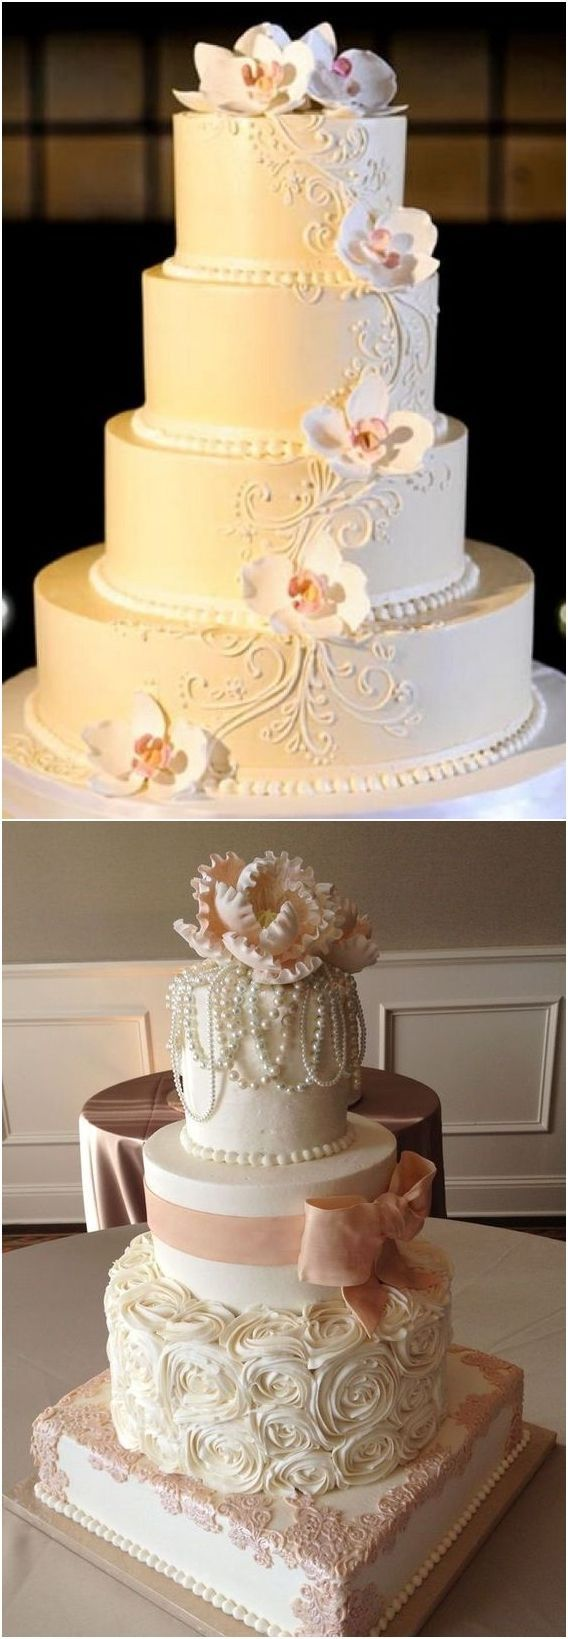 Vintage buttercream wedding cakes #weddings #weddingcakes #cakes ...